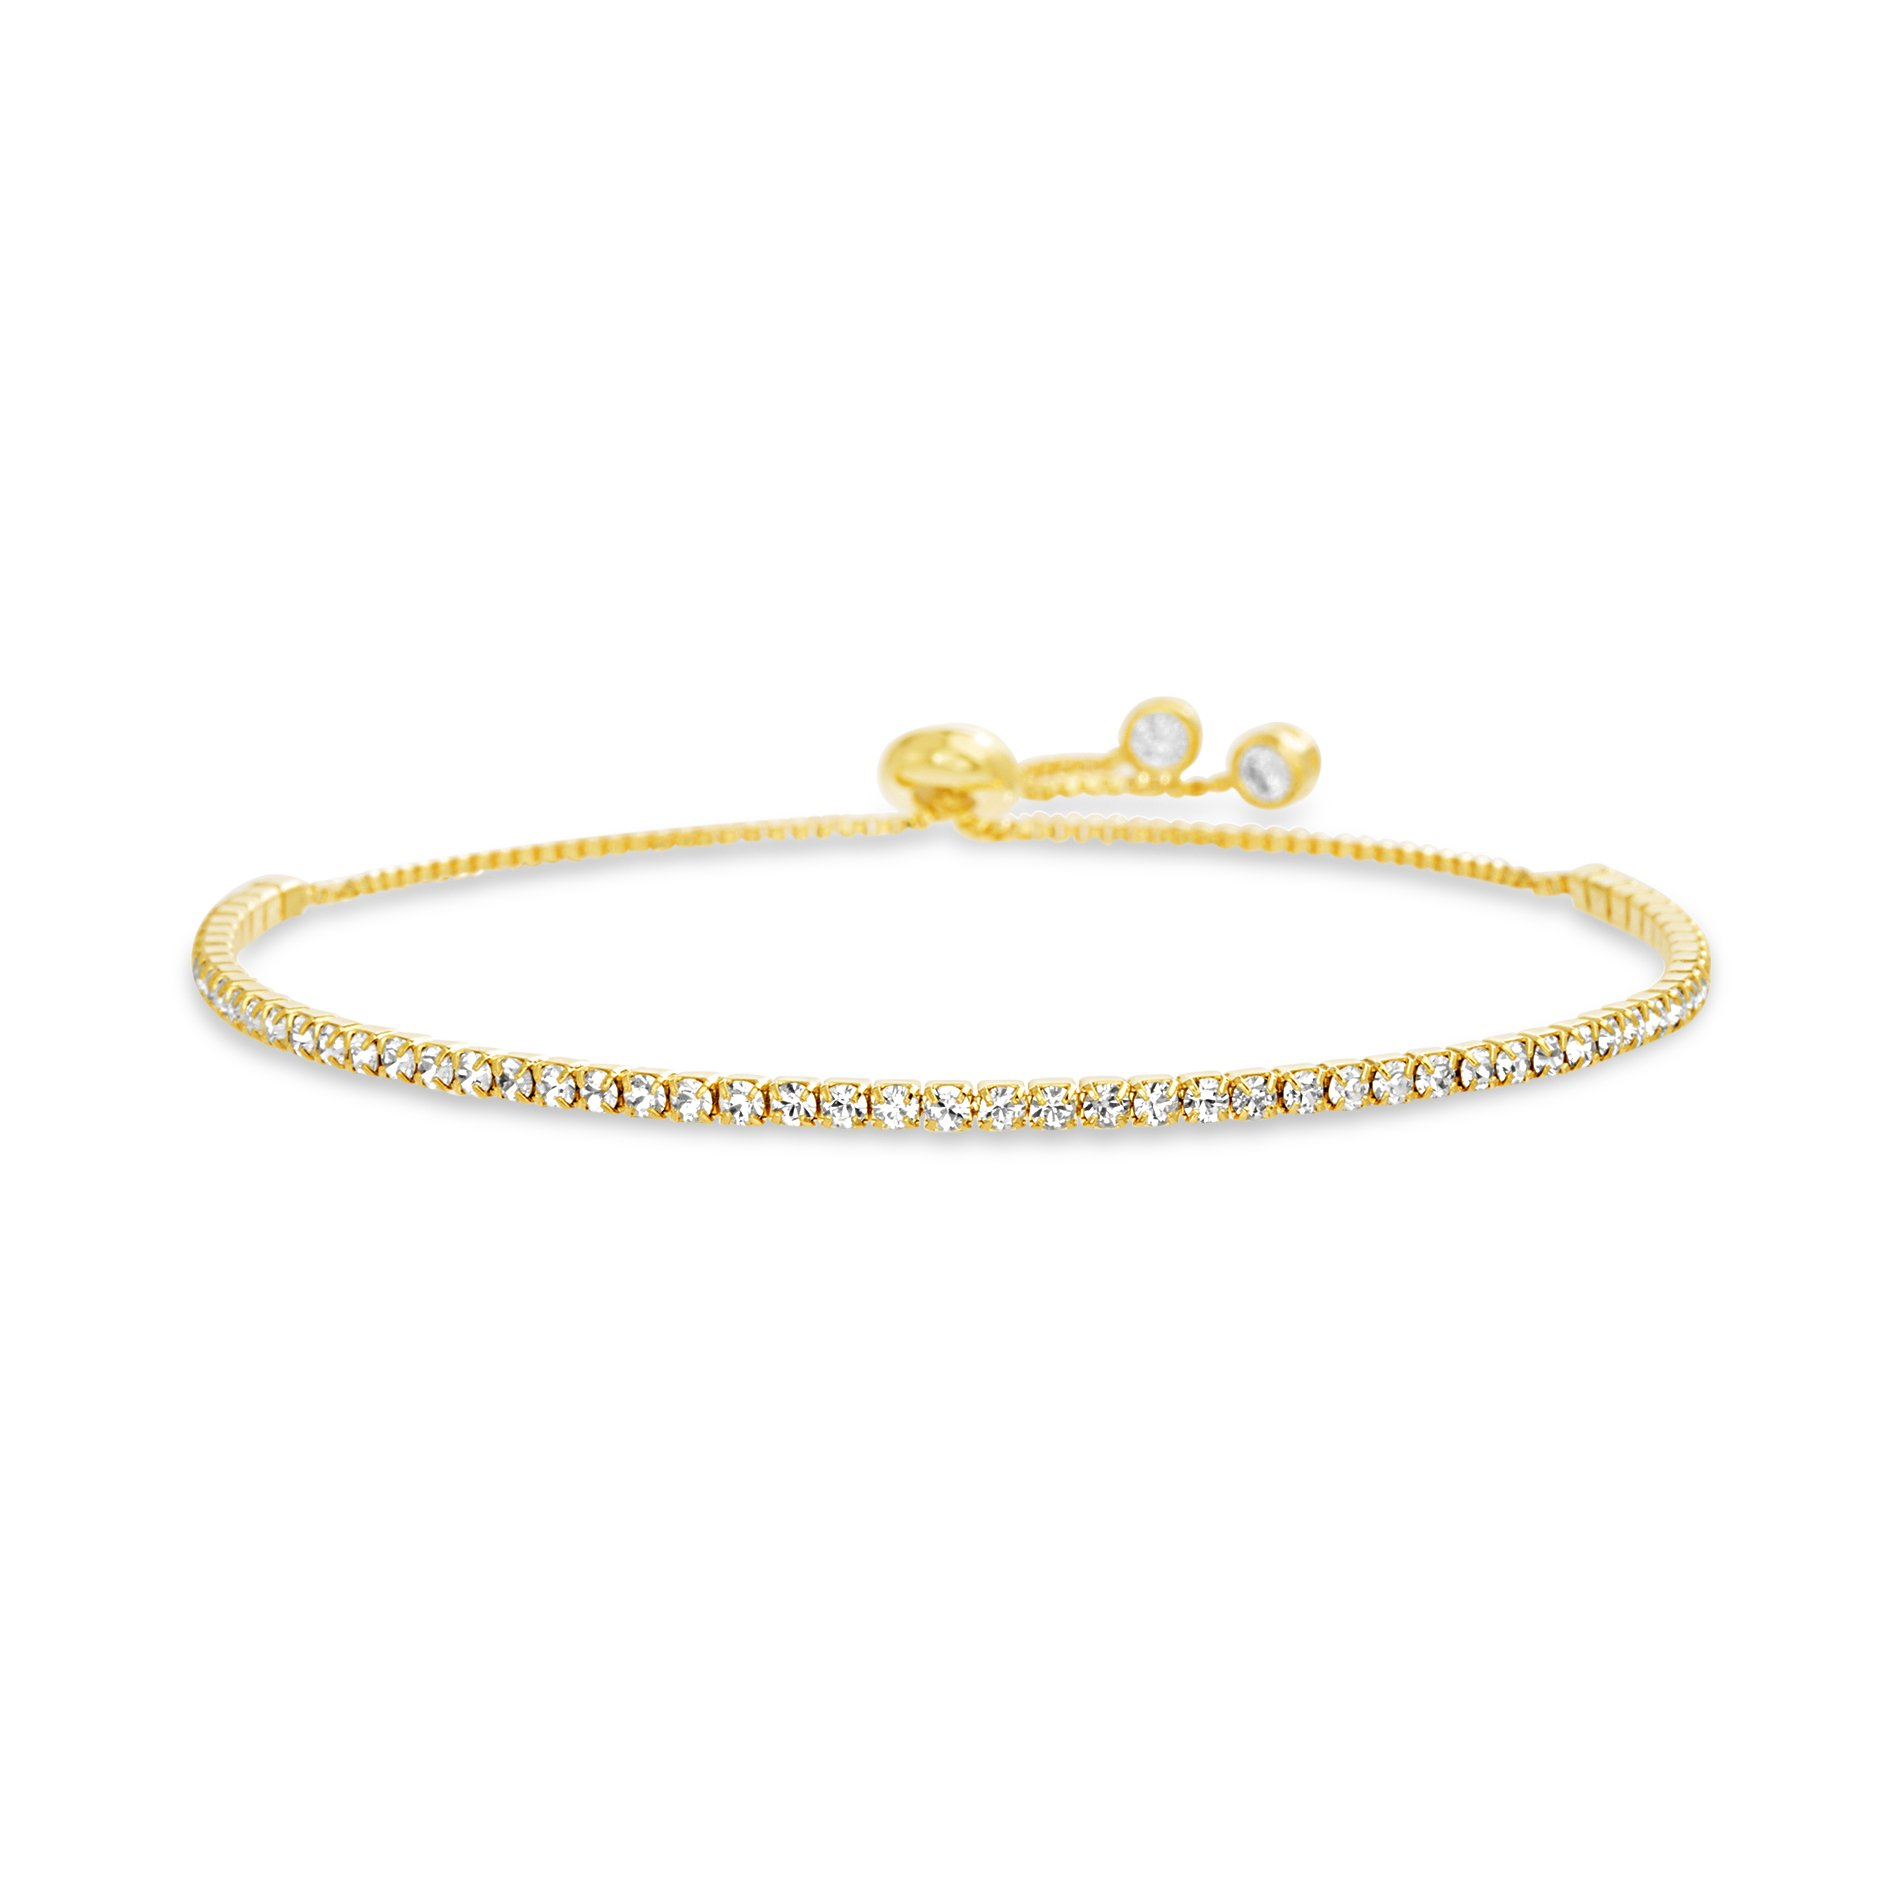 Devin Rose Womens Adjustable Bolo Style Tennis Bracelet Made with 2mm Swarovski Crystals in Yellow Gold Plated Brass